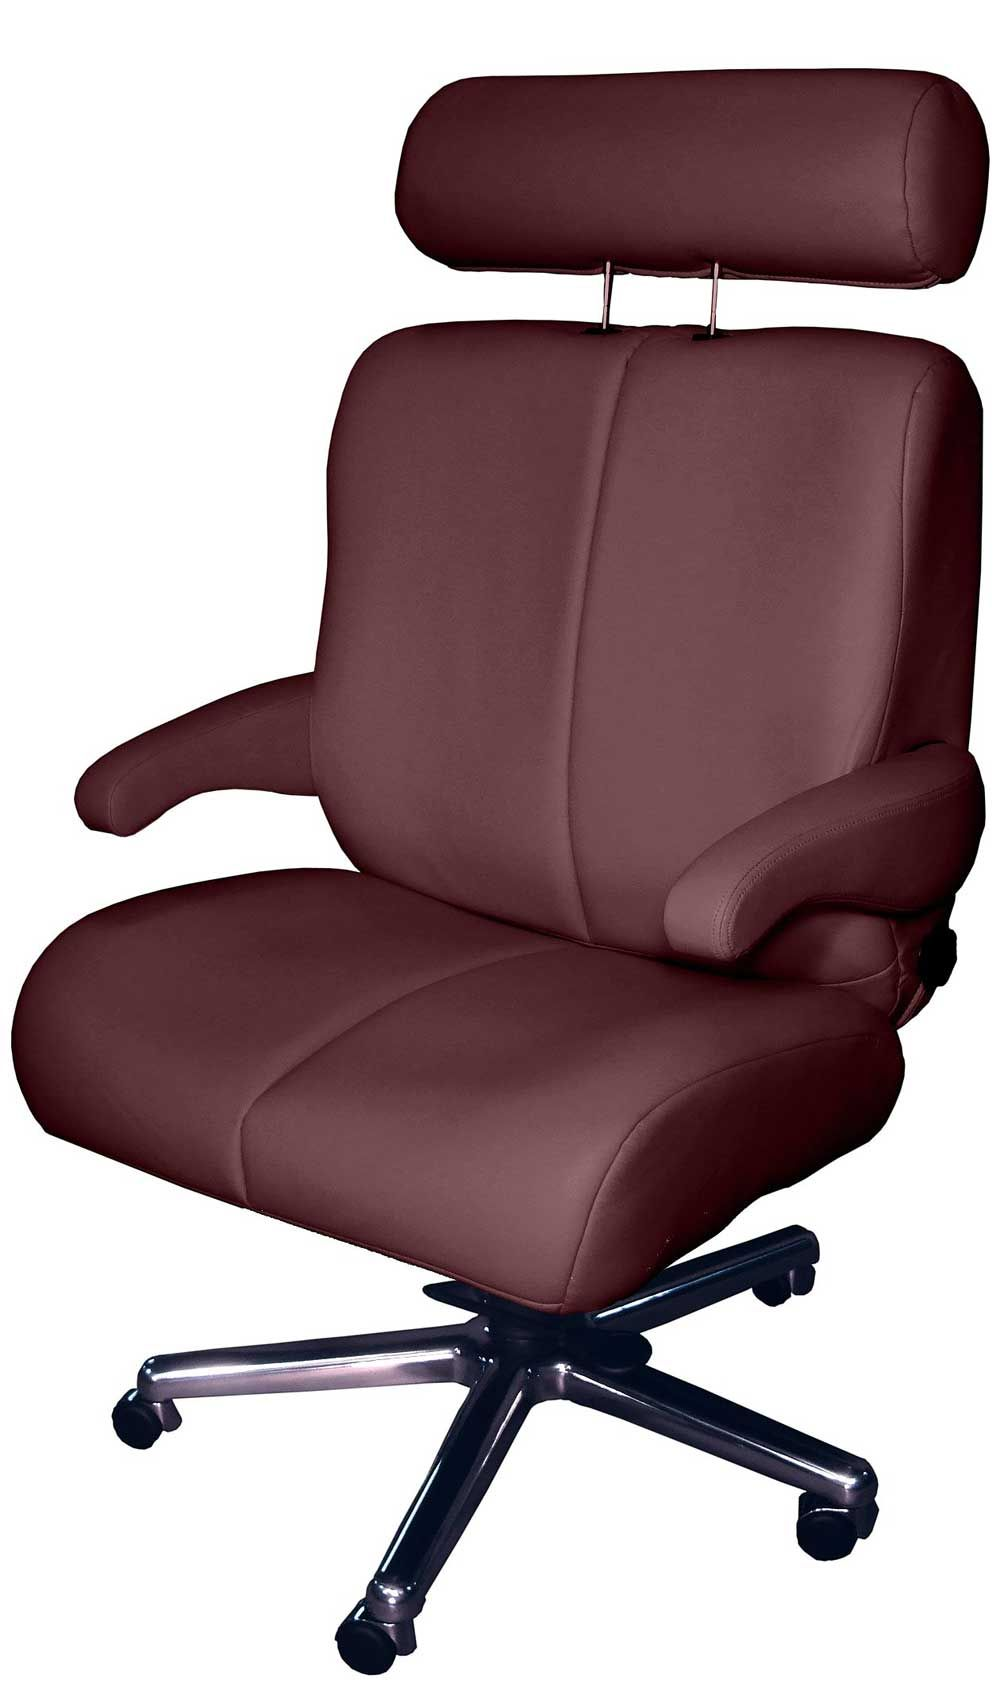 Bariatric Capacity Leather Tall and Wide Office Chair  Luxury